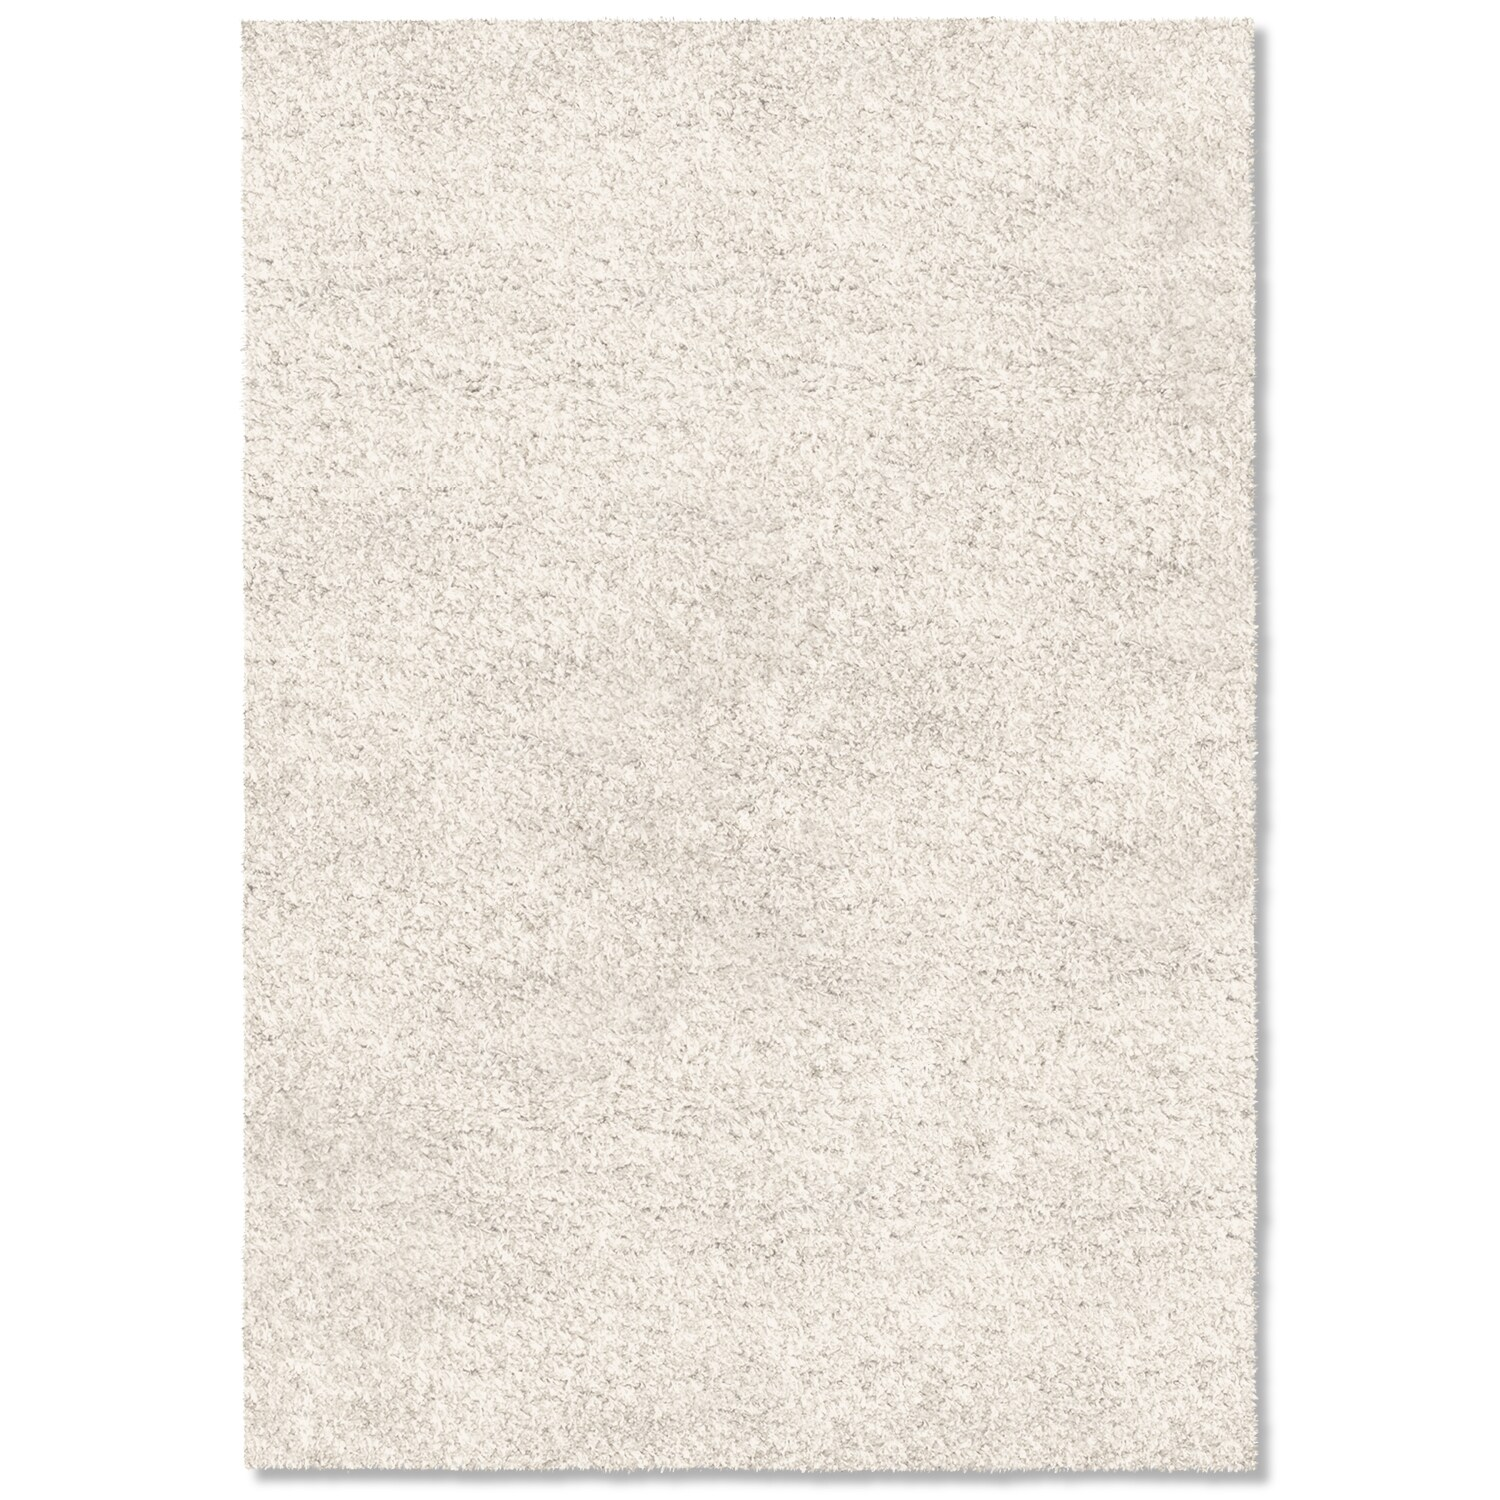 Rugs - Comfort Shag Area Rug - White